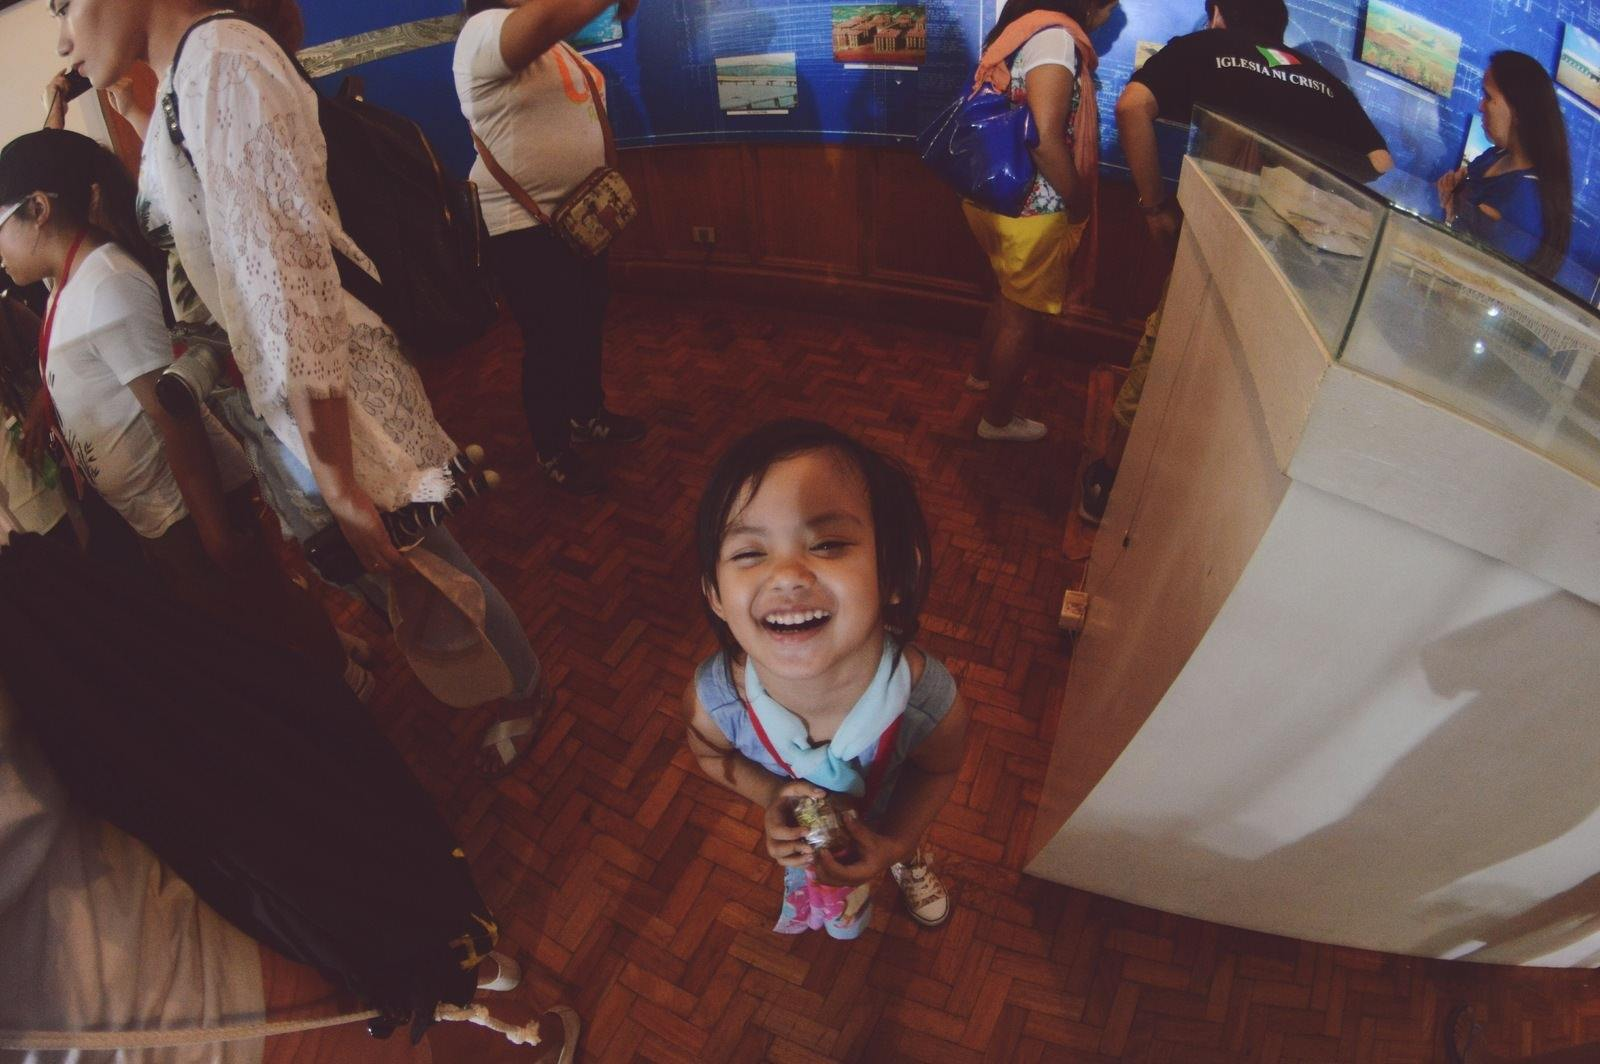 Family-Travel-Summer-Tips-10-Ways-to-Have-a-Memorable-Holiday-2